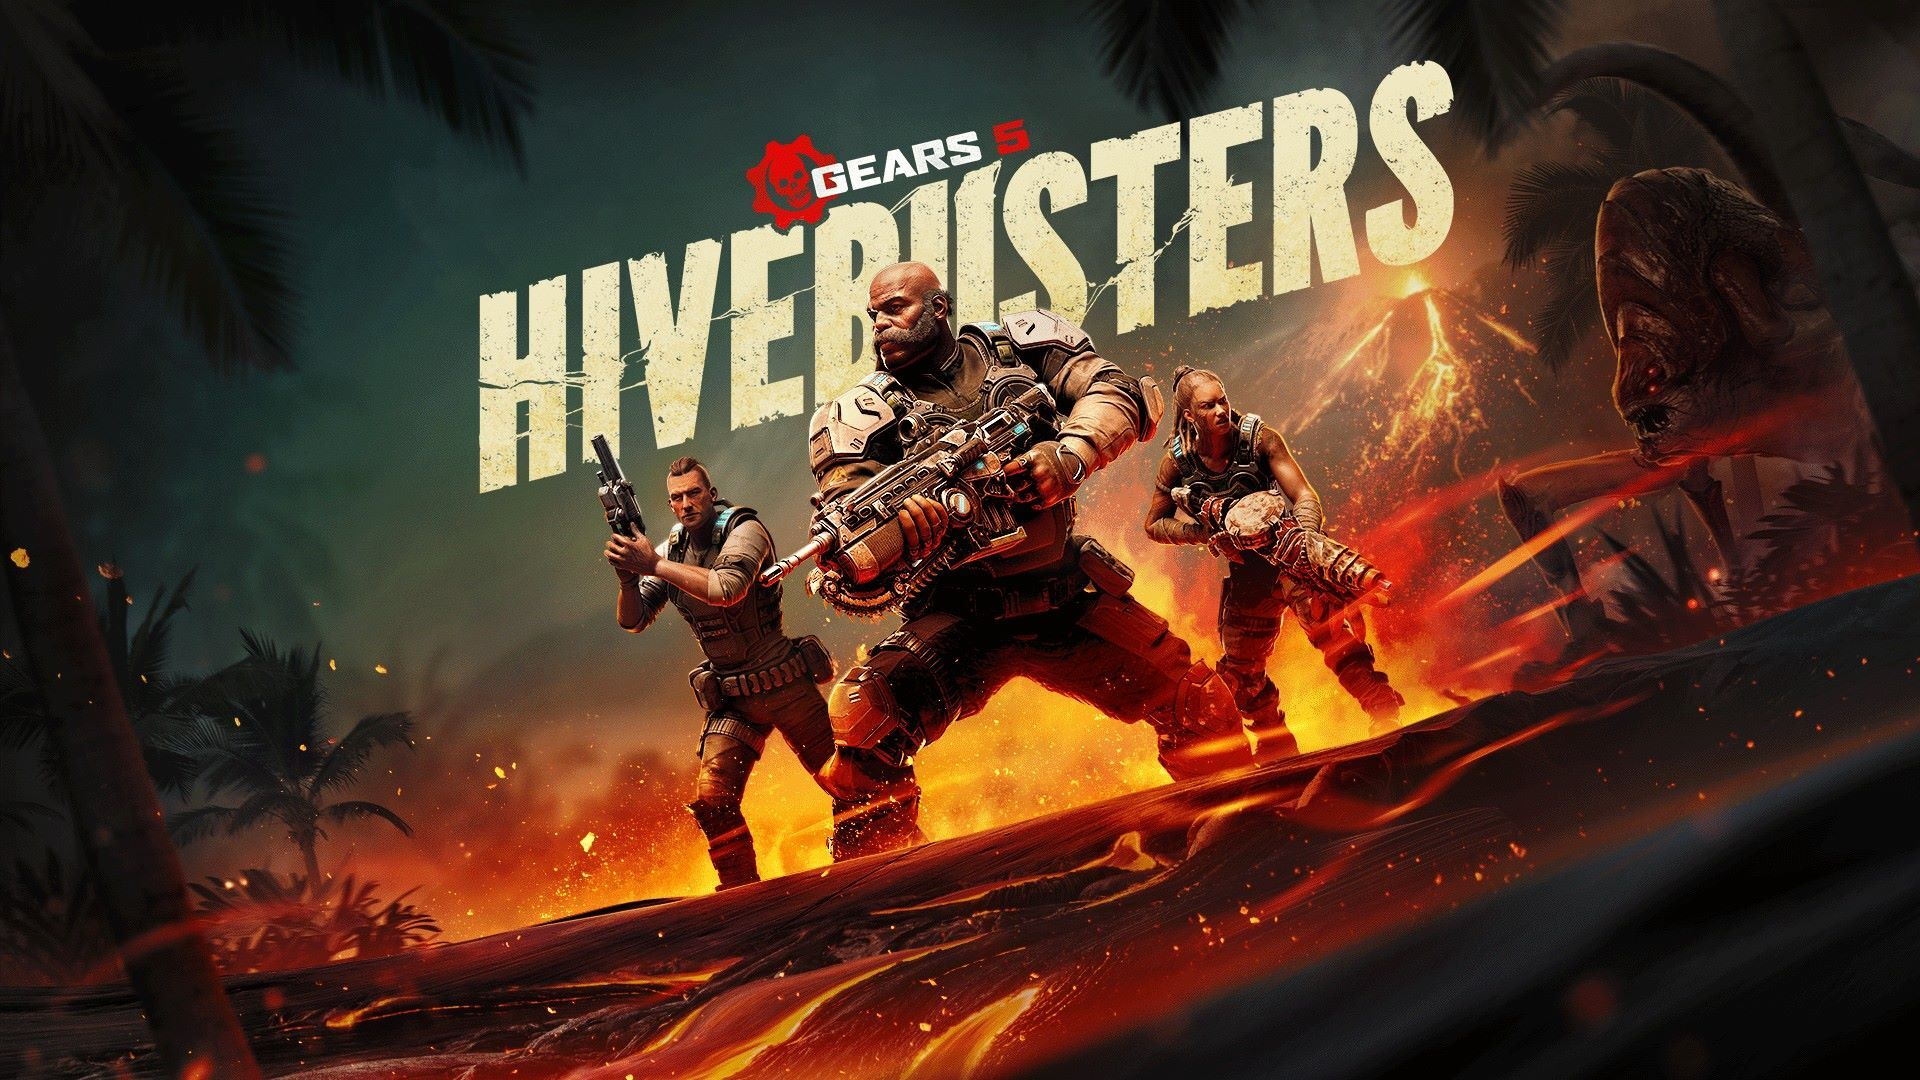 Gears5 Hivebusters